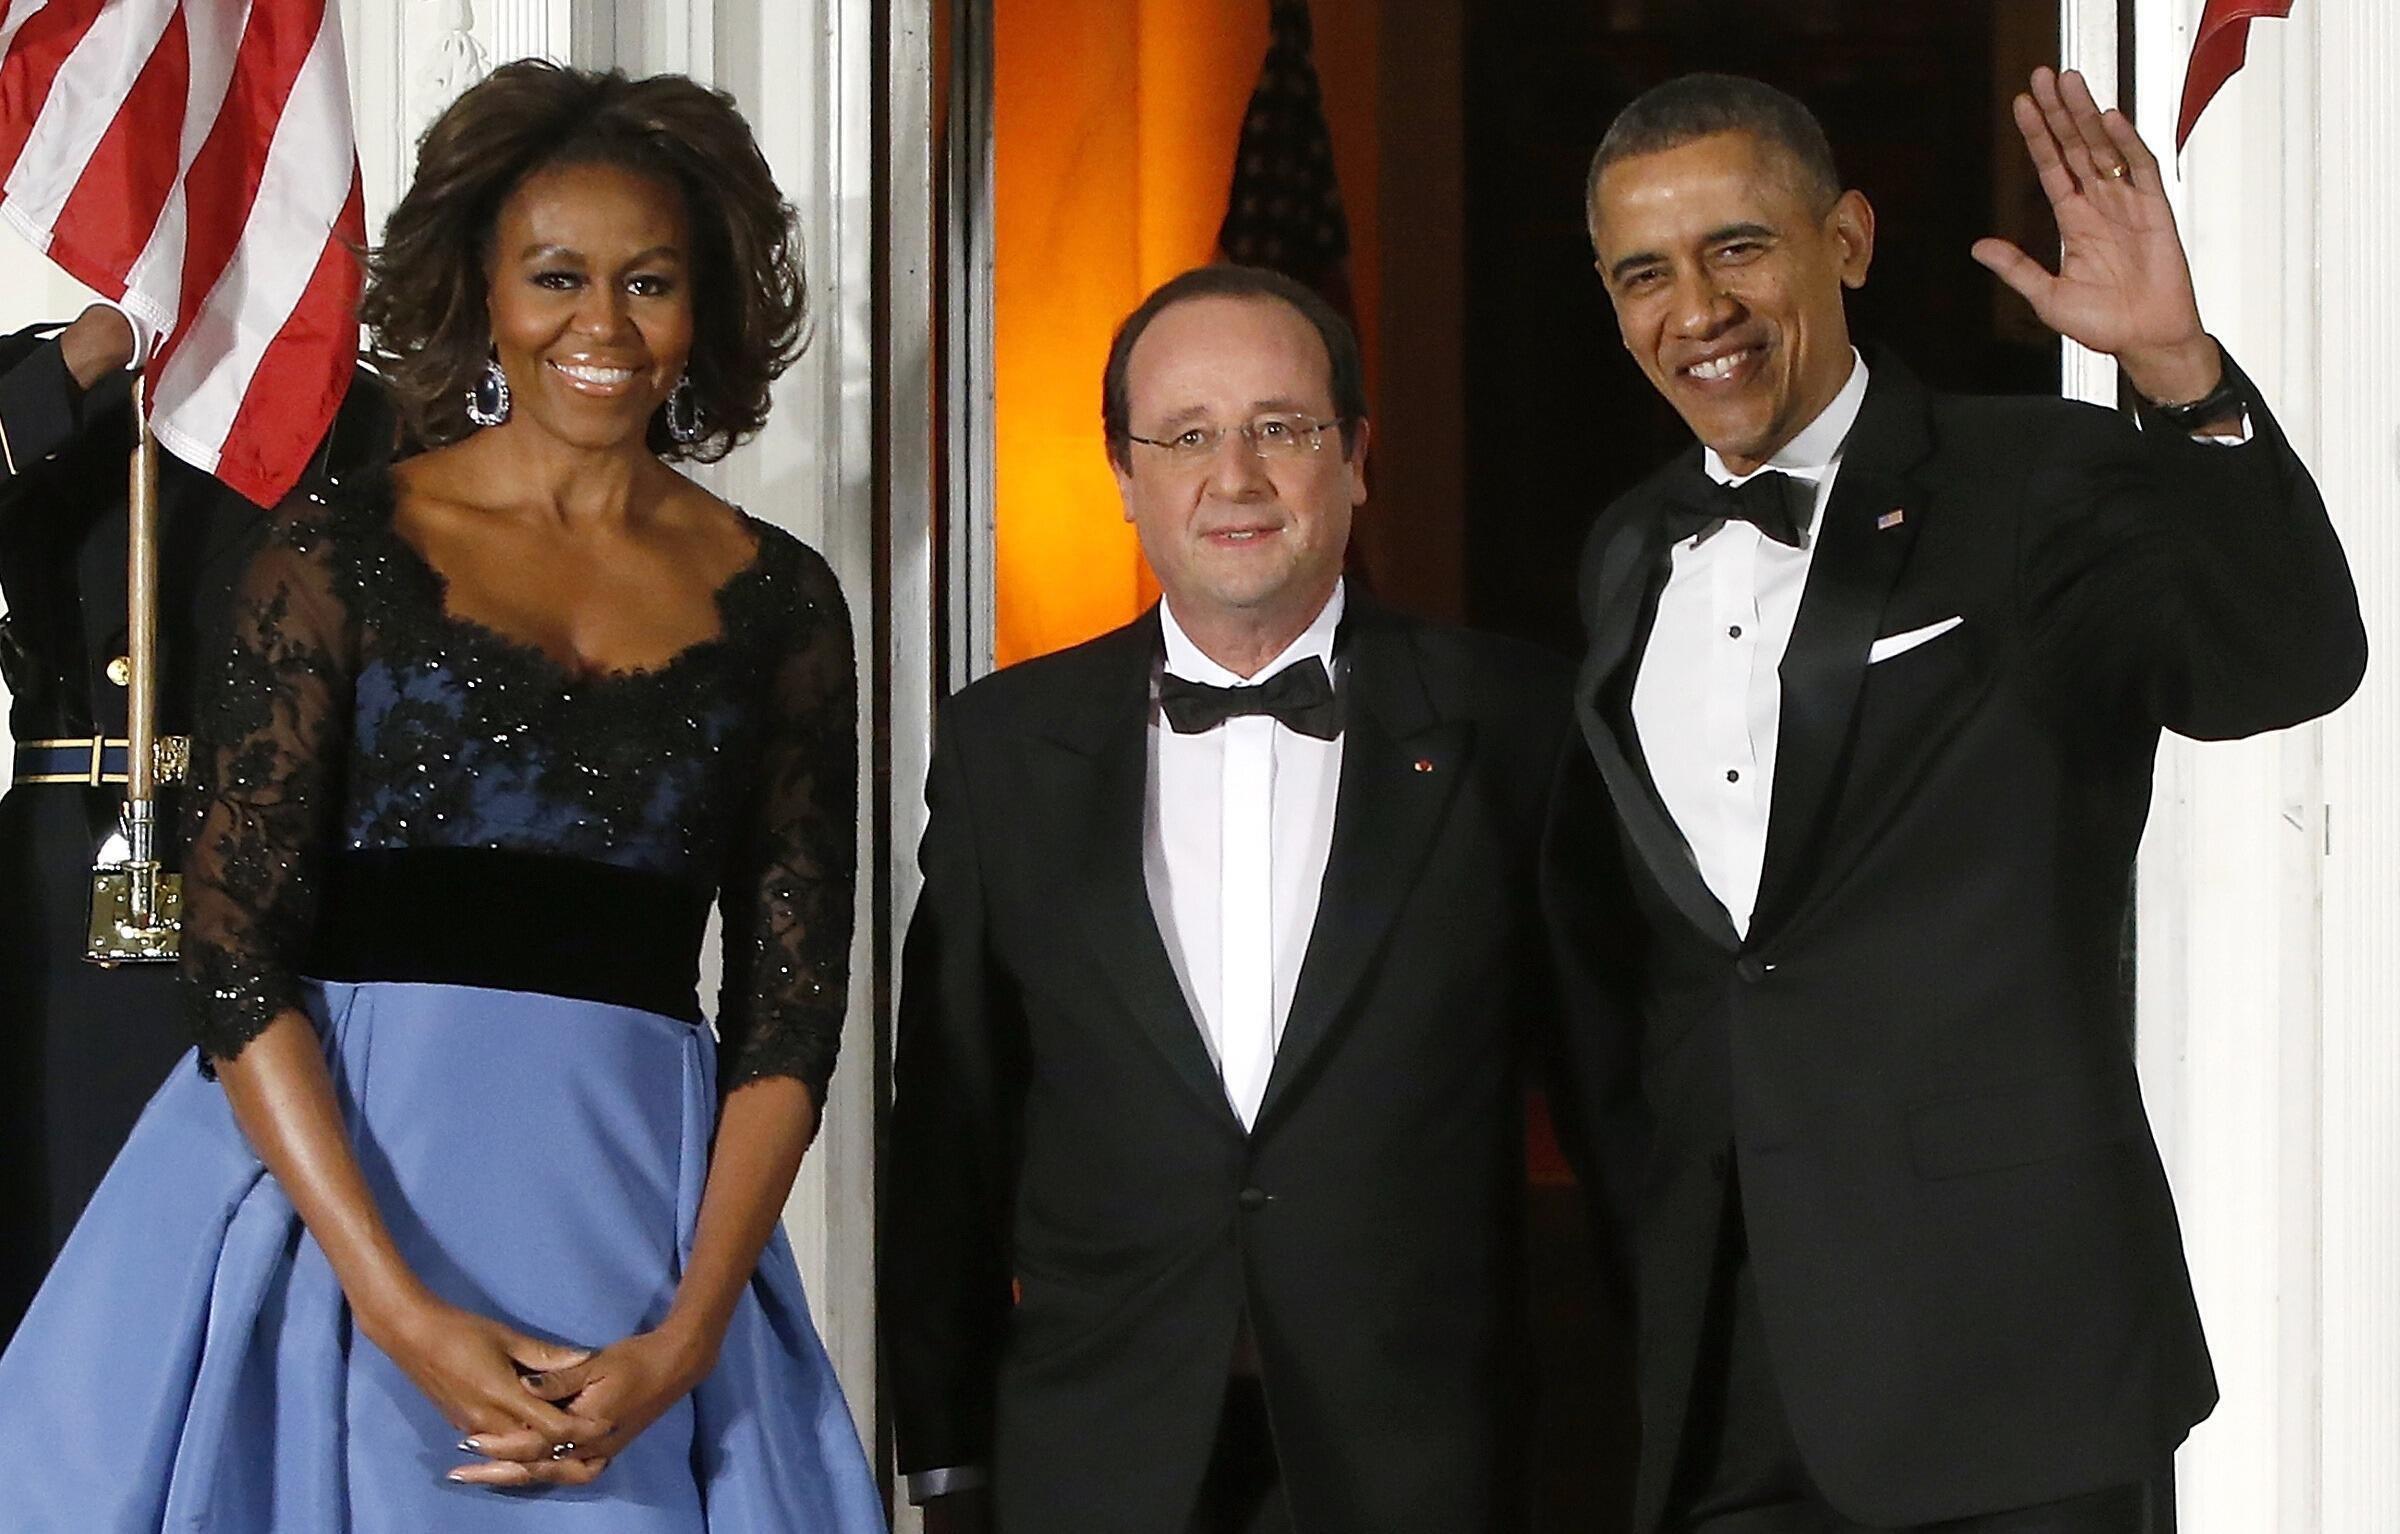 Barack Obama with his wife Michelle greet François Hollande at the White House